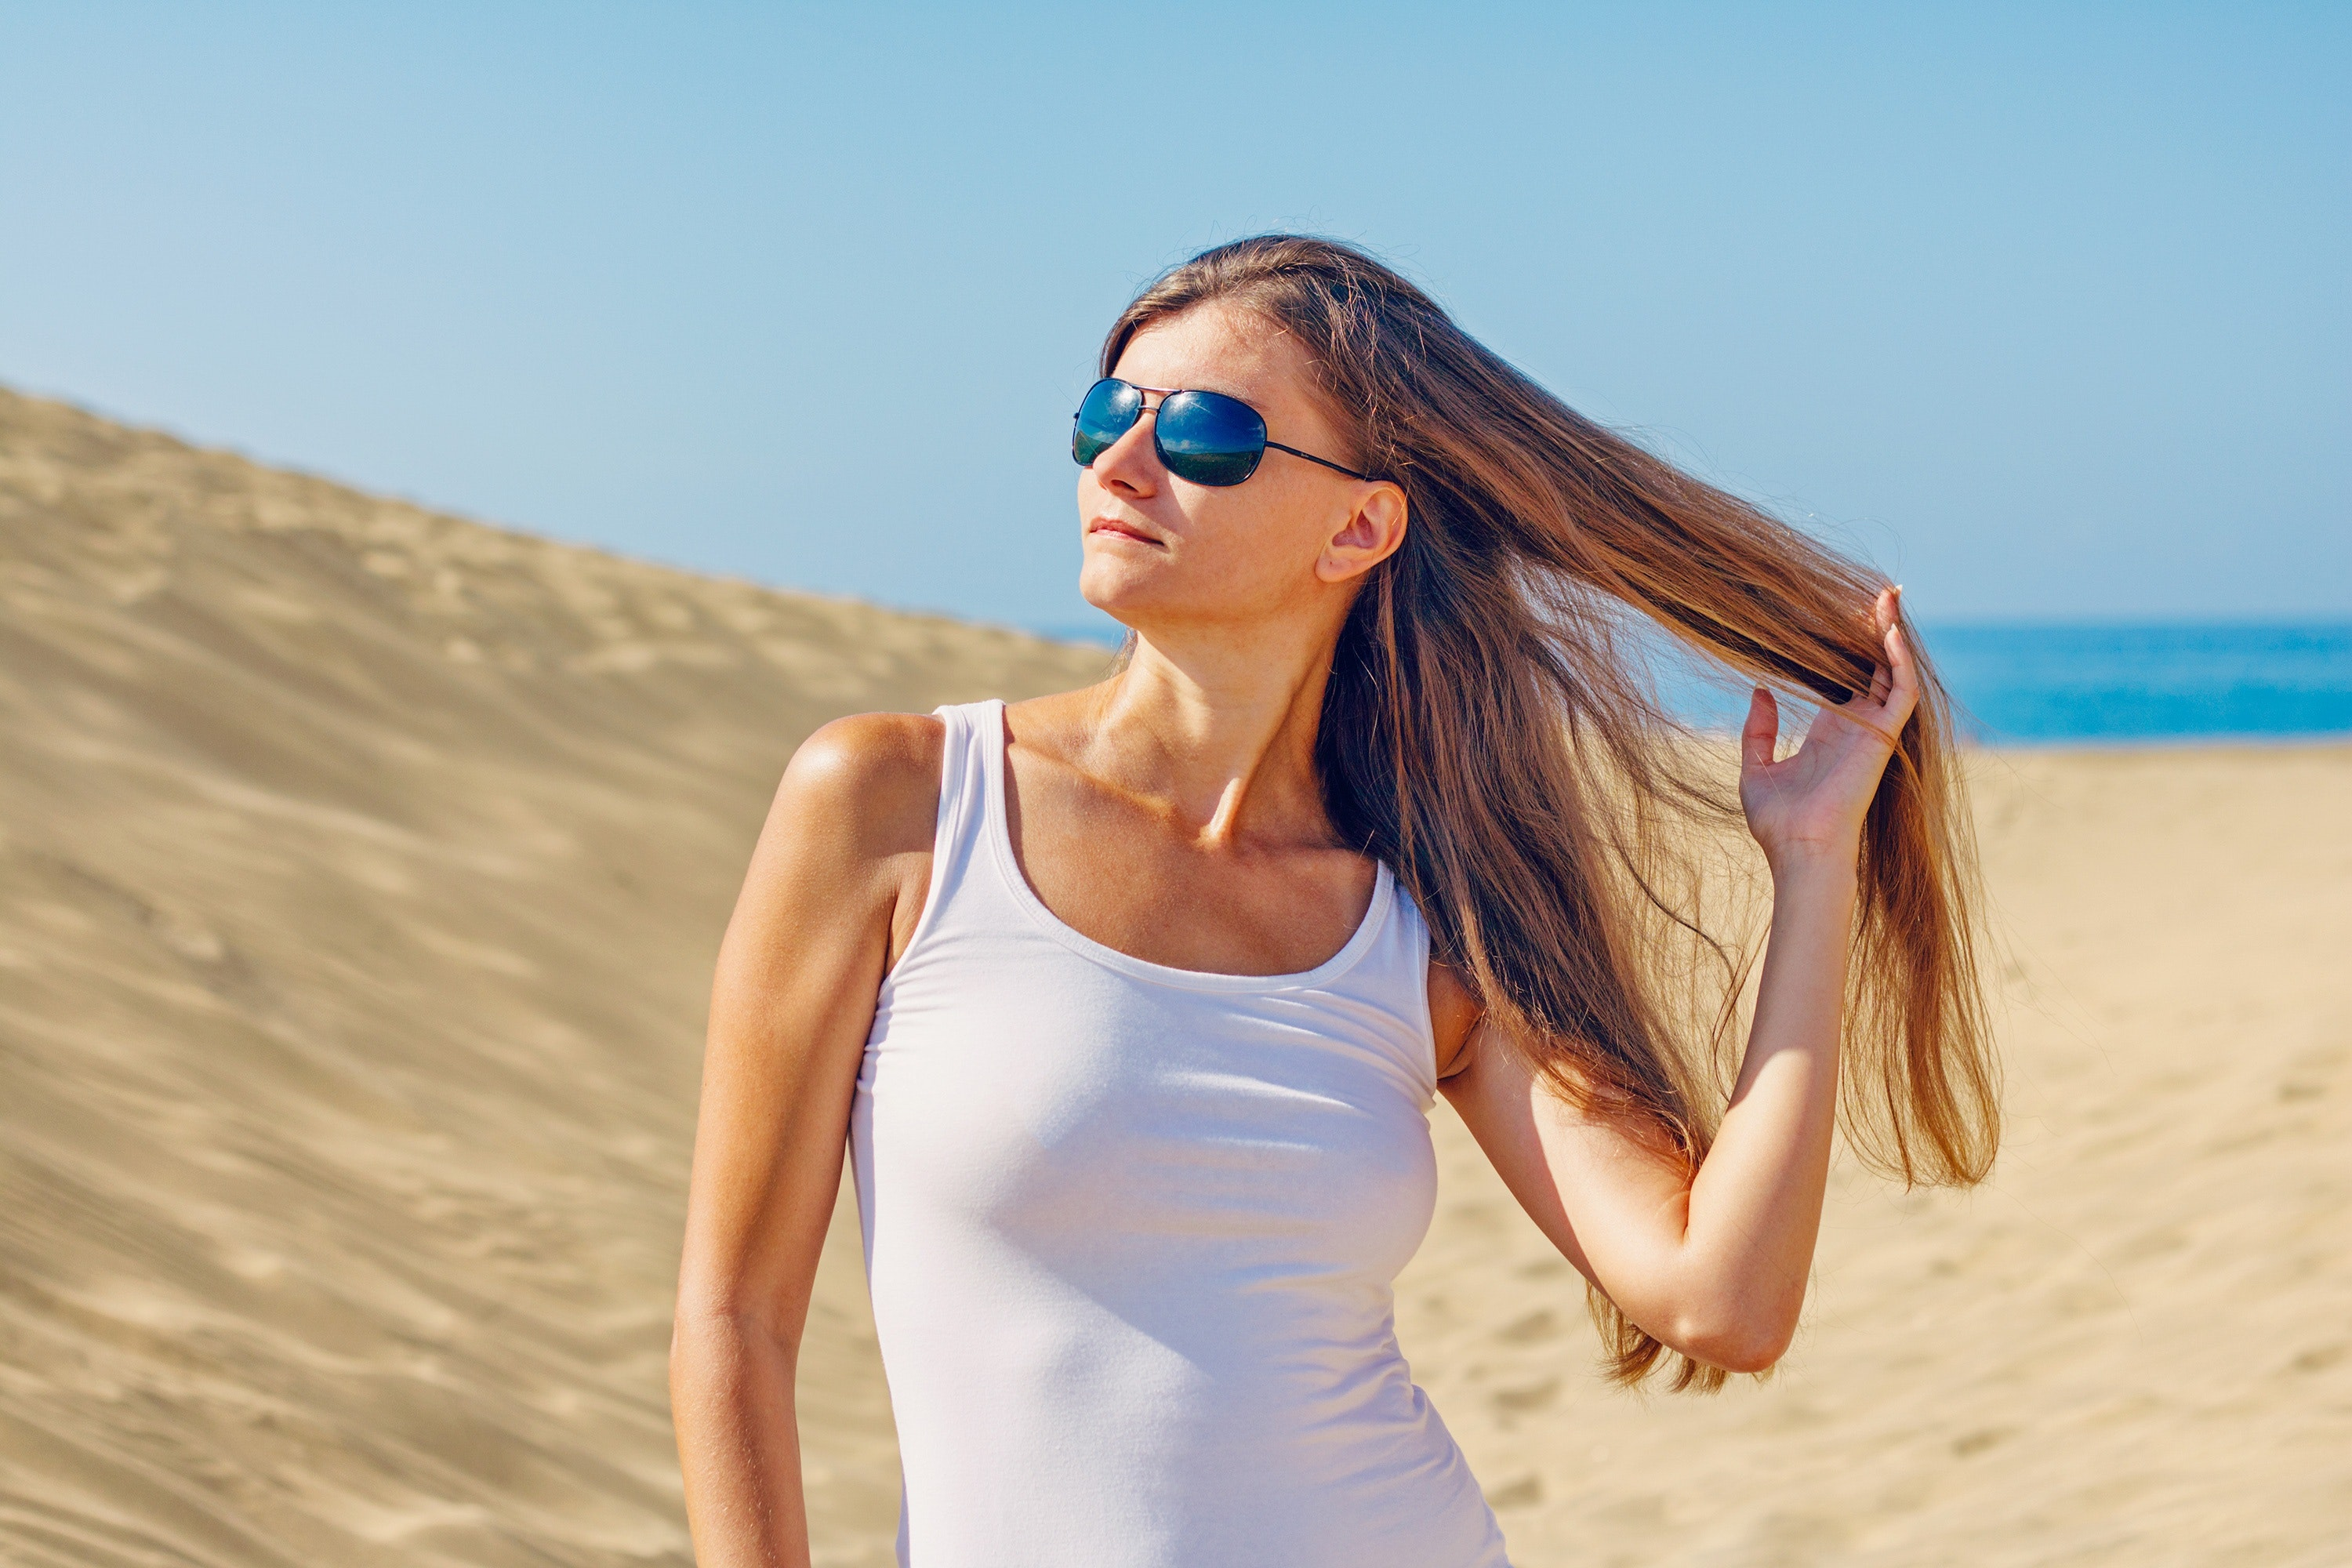 Woman Wearing Sunglasses at Beach, Beach, Relaxation, Woman, Water, HQ Photo